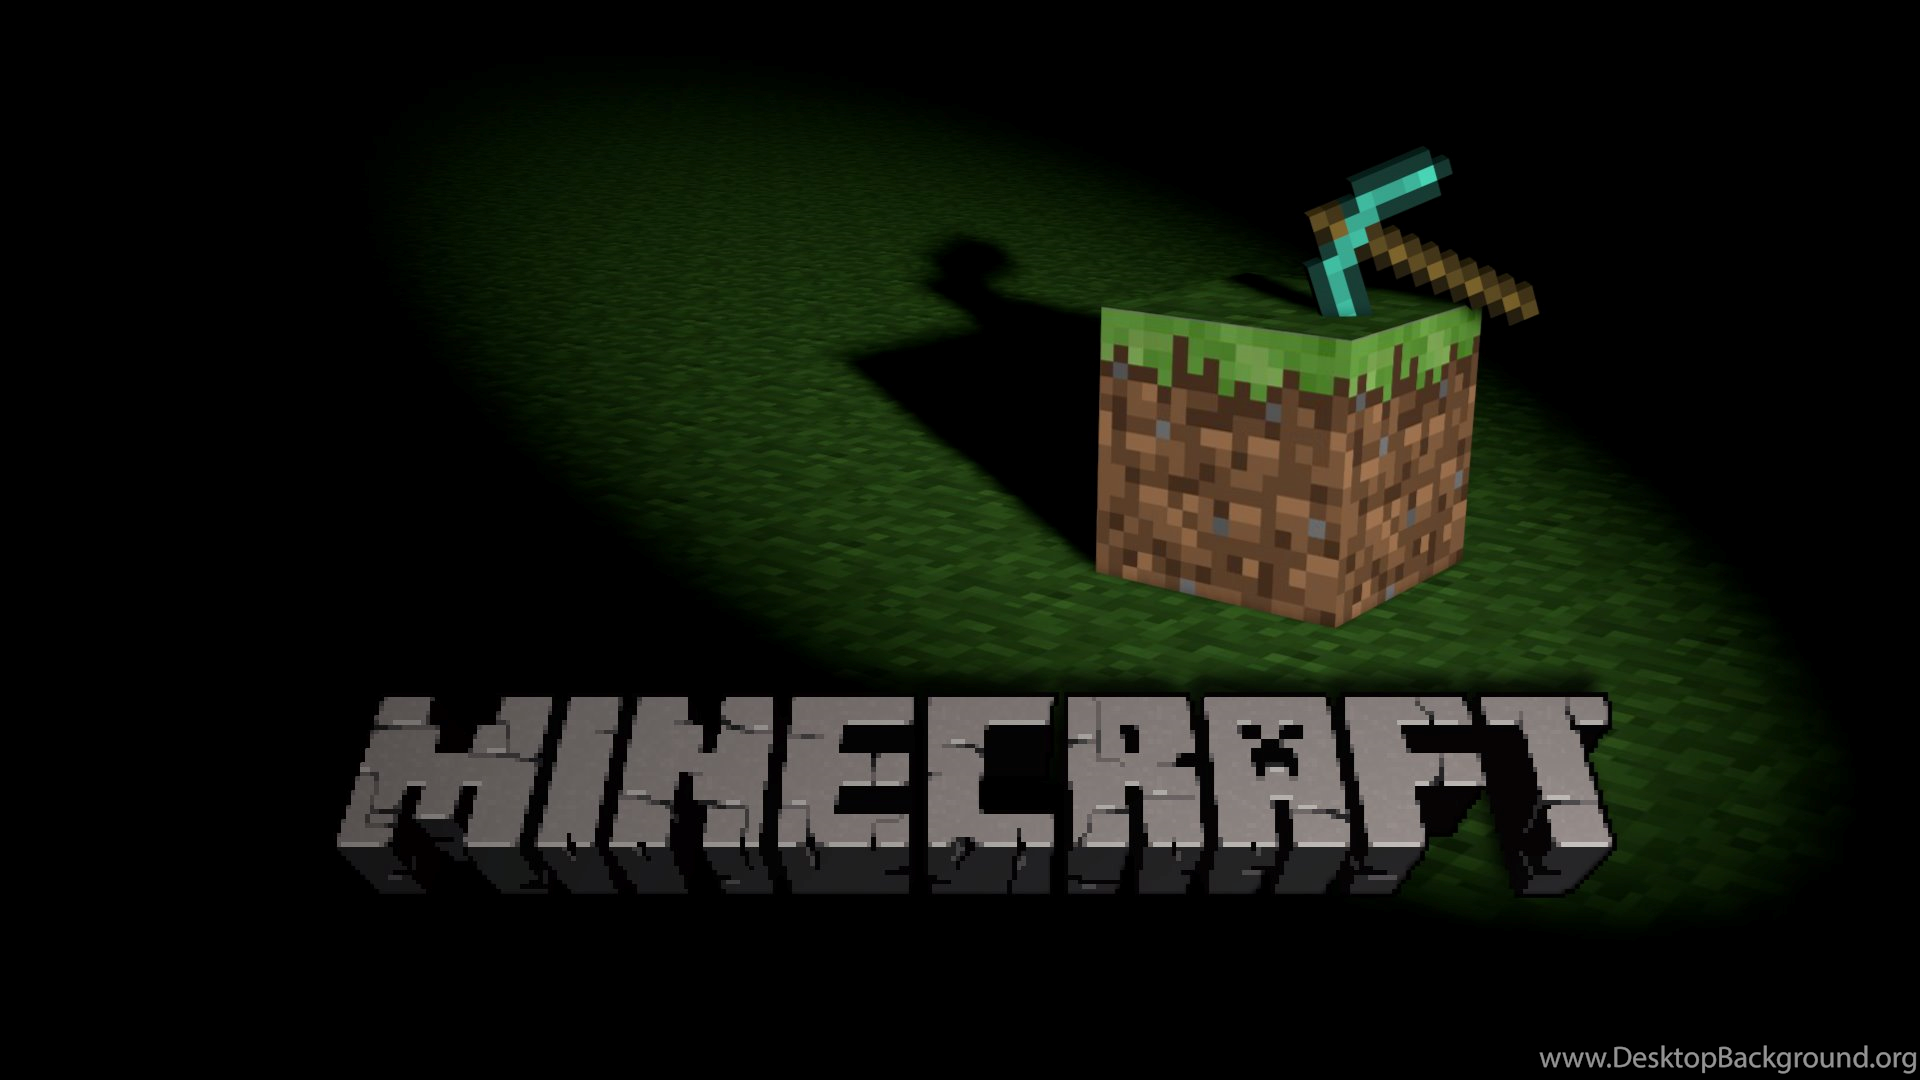 Minecraft Wallpapers HD IPad Desktop Background